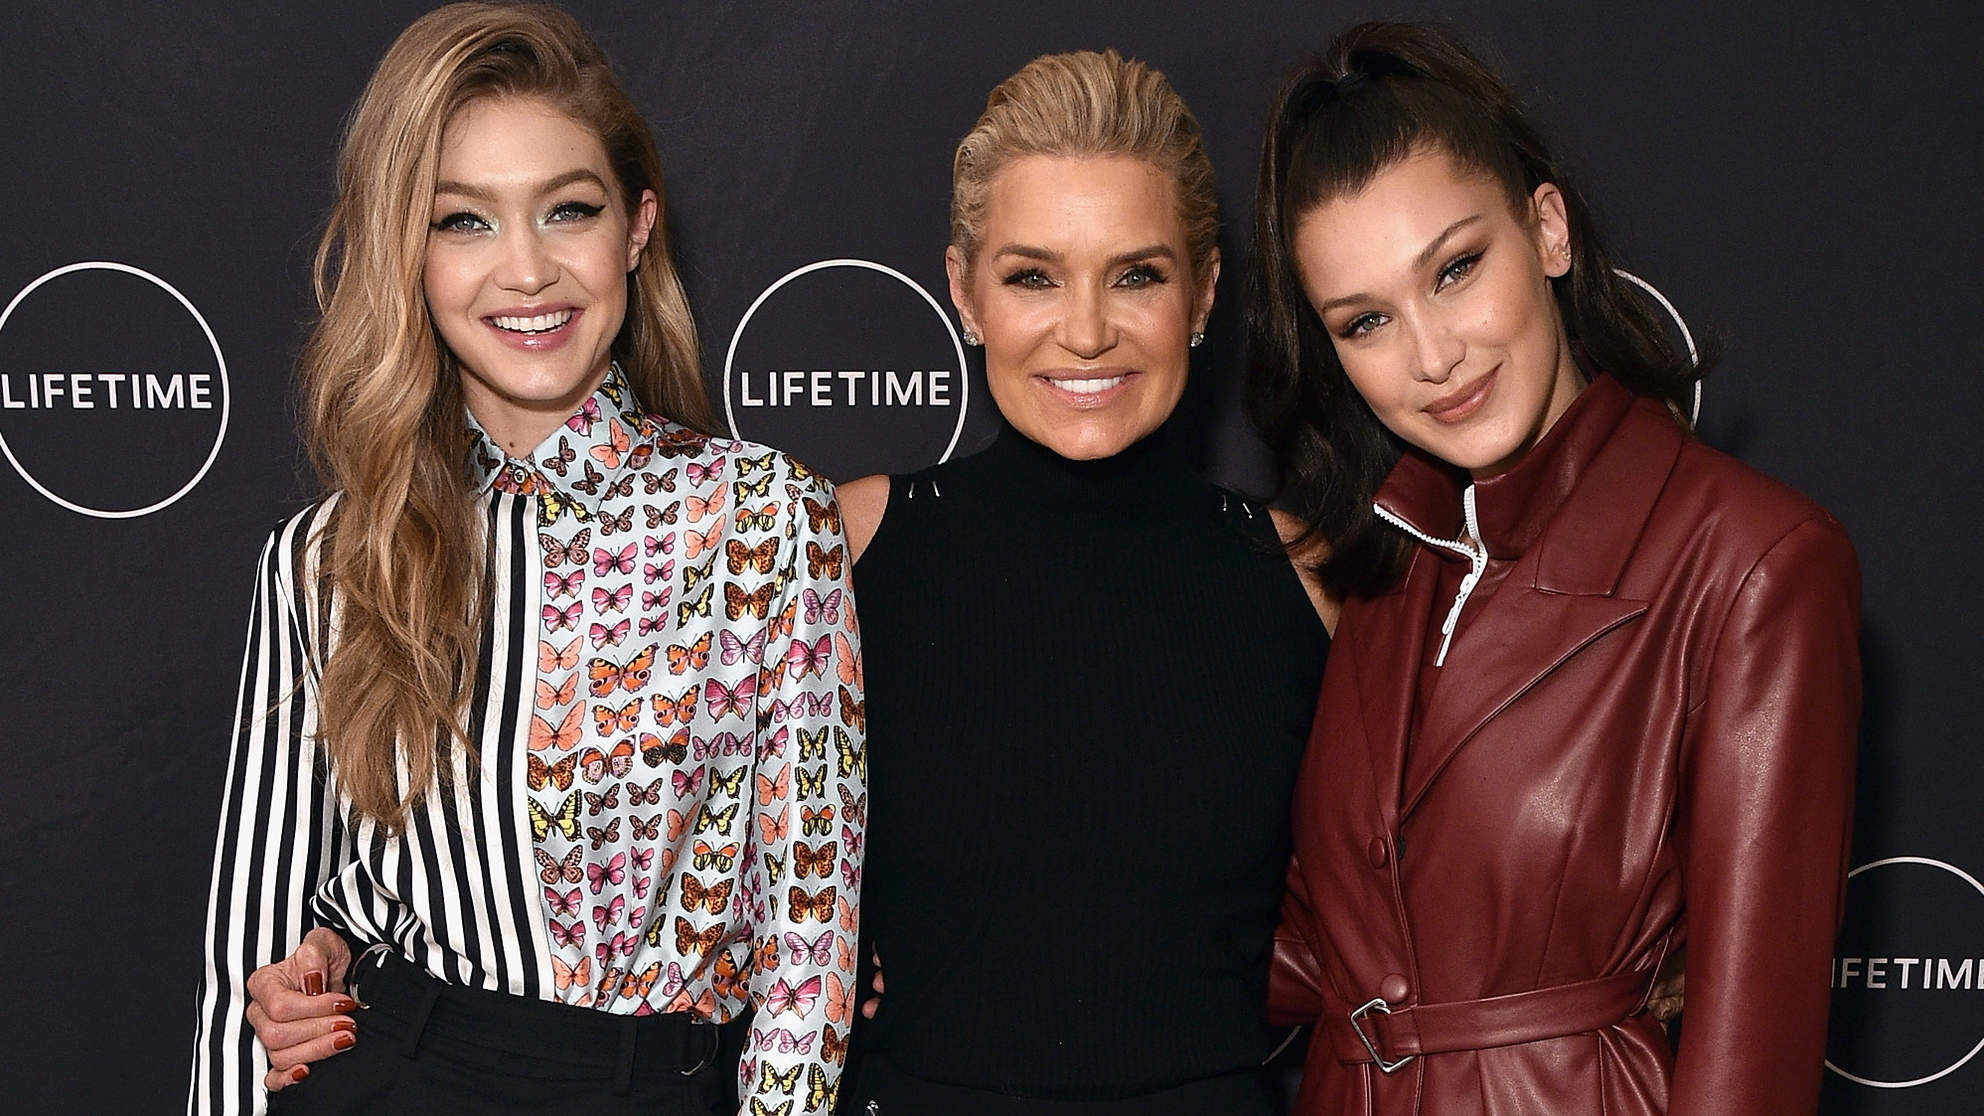 Yolanda Hadid Celebrates Her Birthday And The Premiere Of Her New Lifetime Show, 'Making A Model With Yolanda Hadid' With Friends And Family In New York